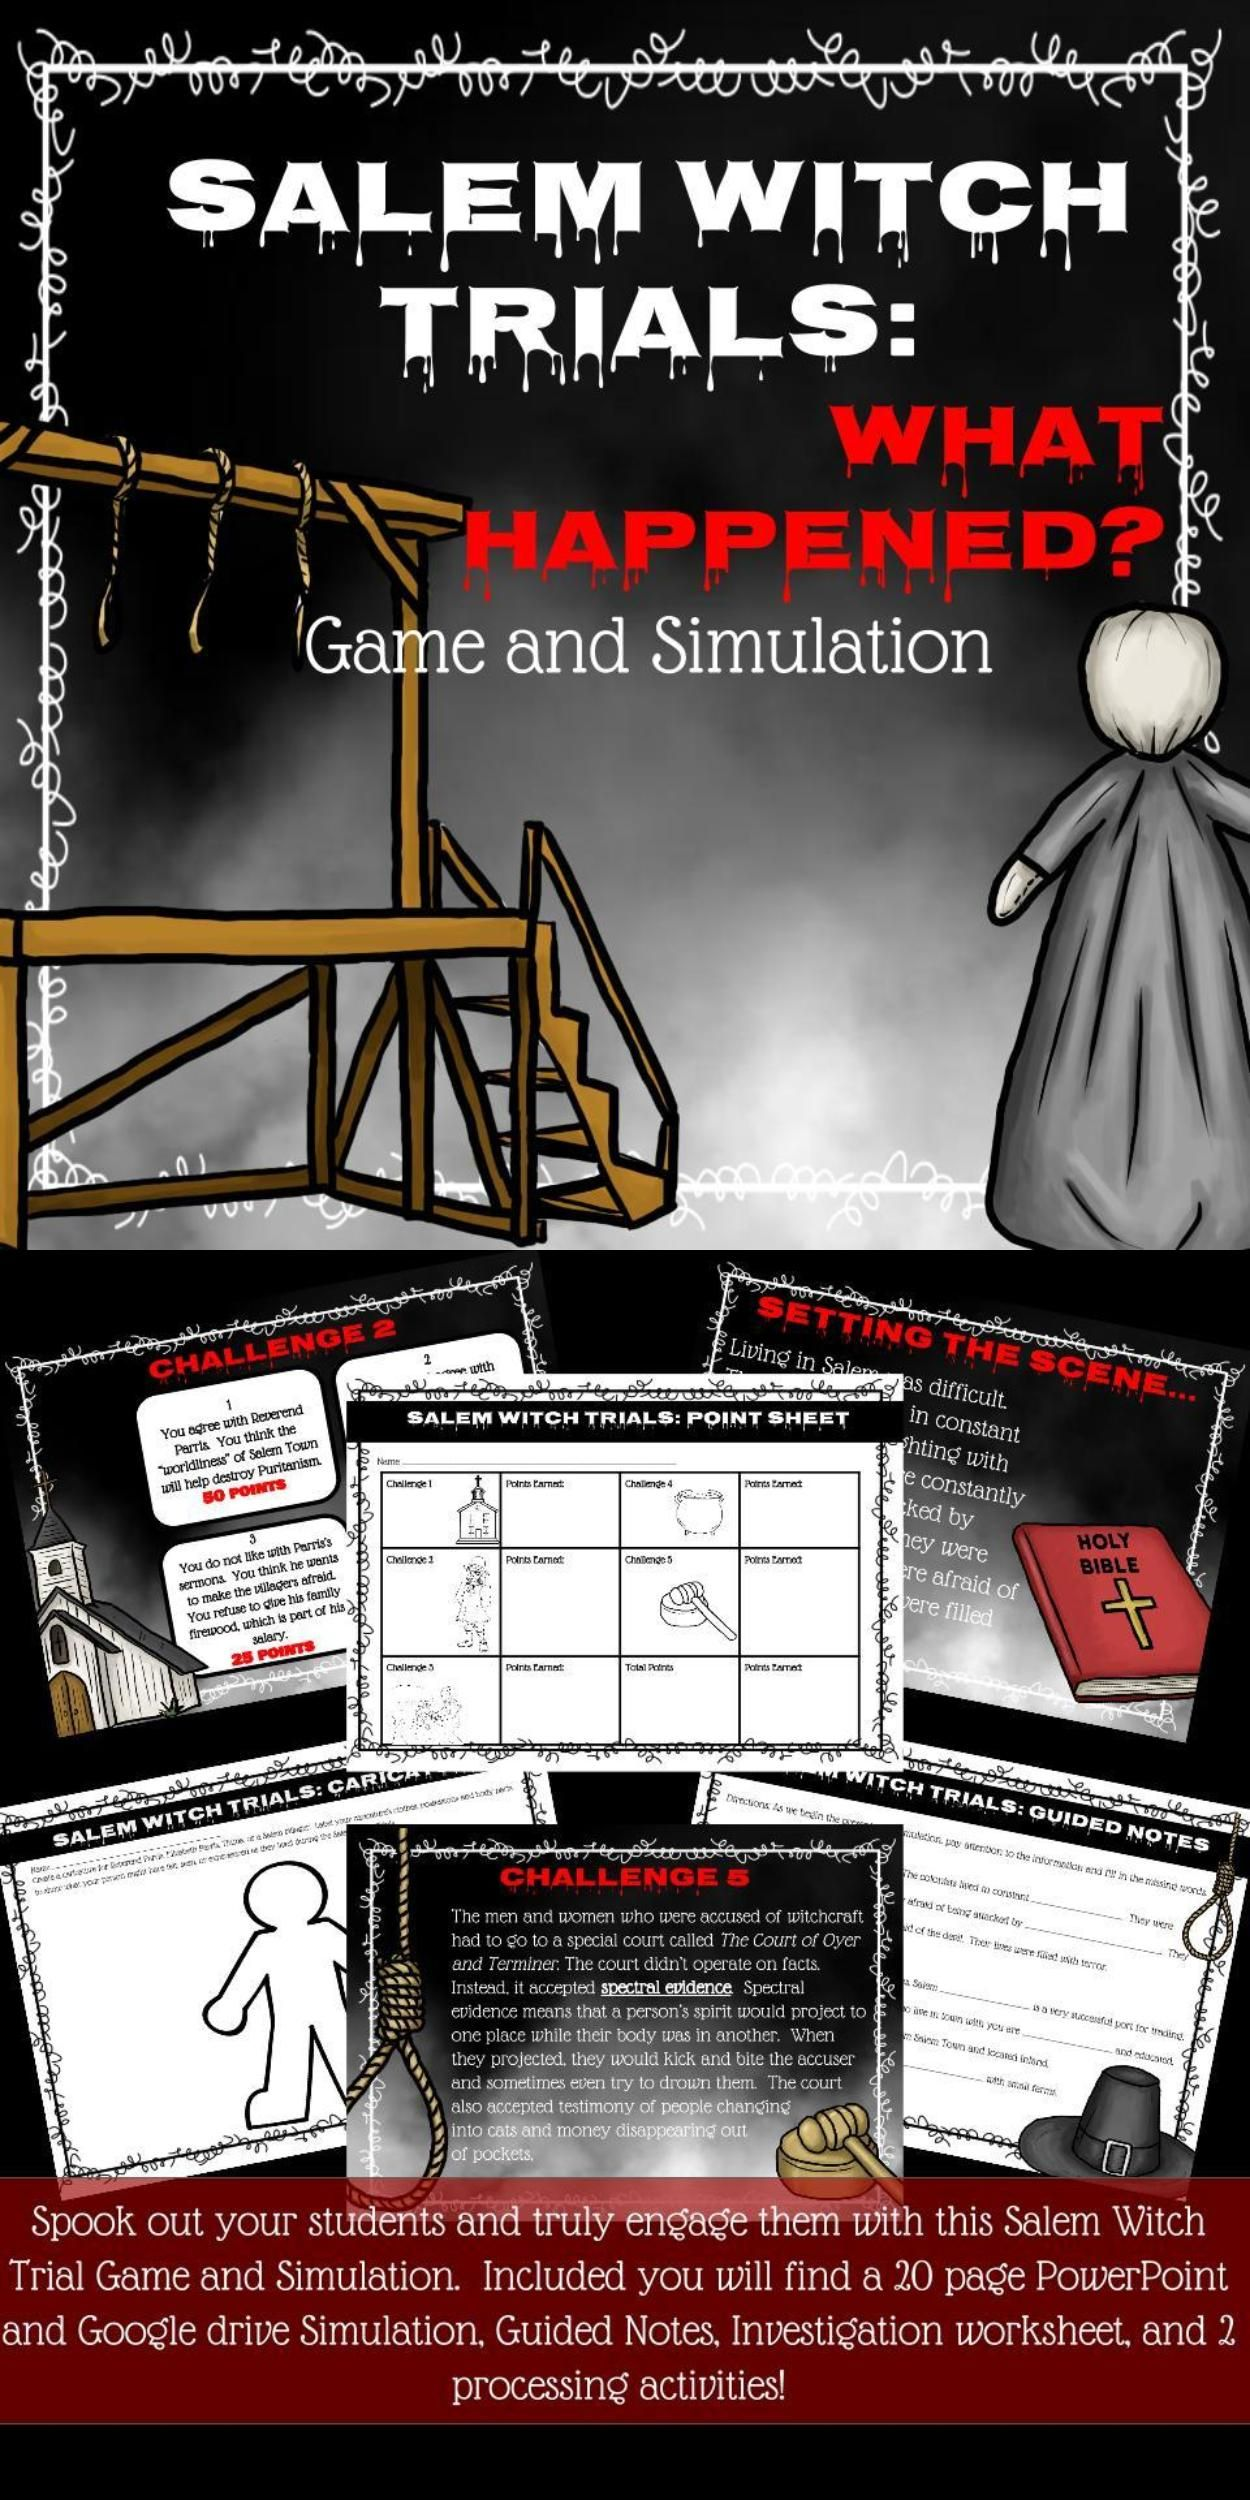 Salem Witch Trial Game And Simulation